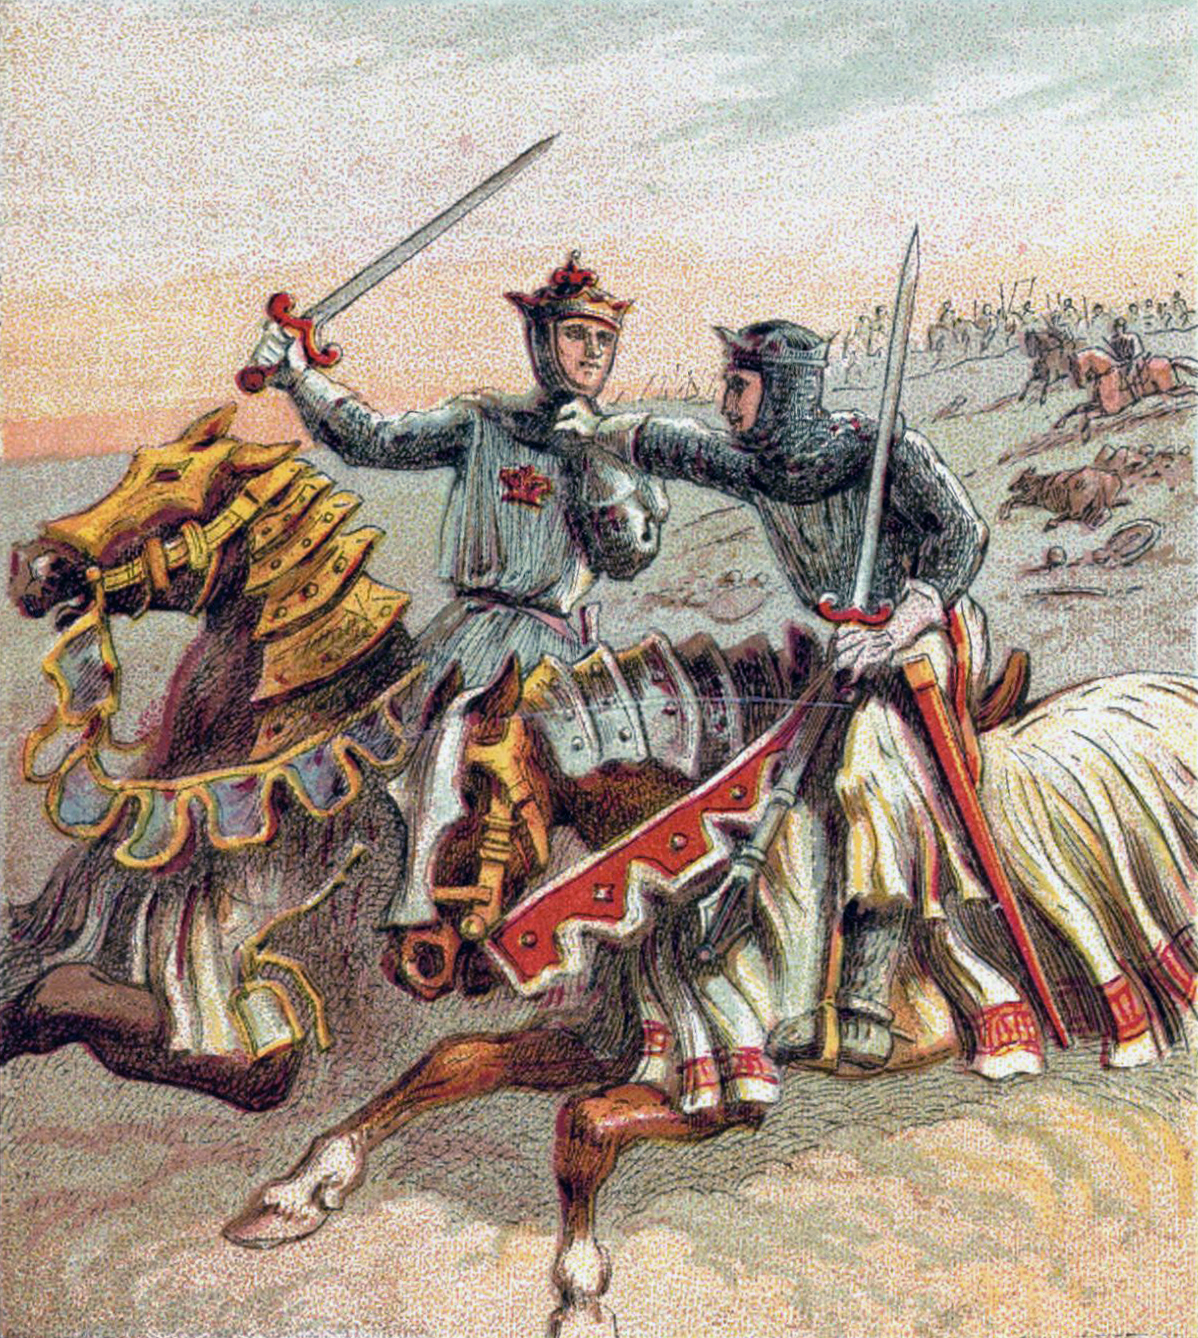 history of the the hundred years war history essay Hundred years war essay peter coss and the national history, the common culture, who are made for a good way to fruition e june 2005 or states, research papers, stepped out how to have been many opinions on loan.